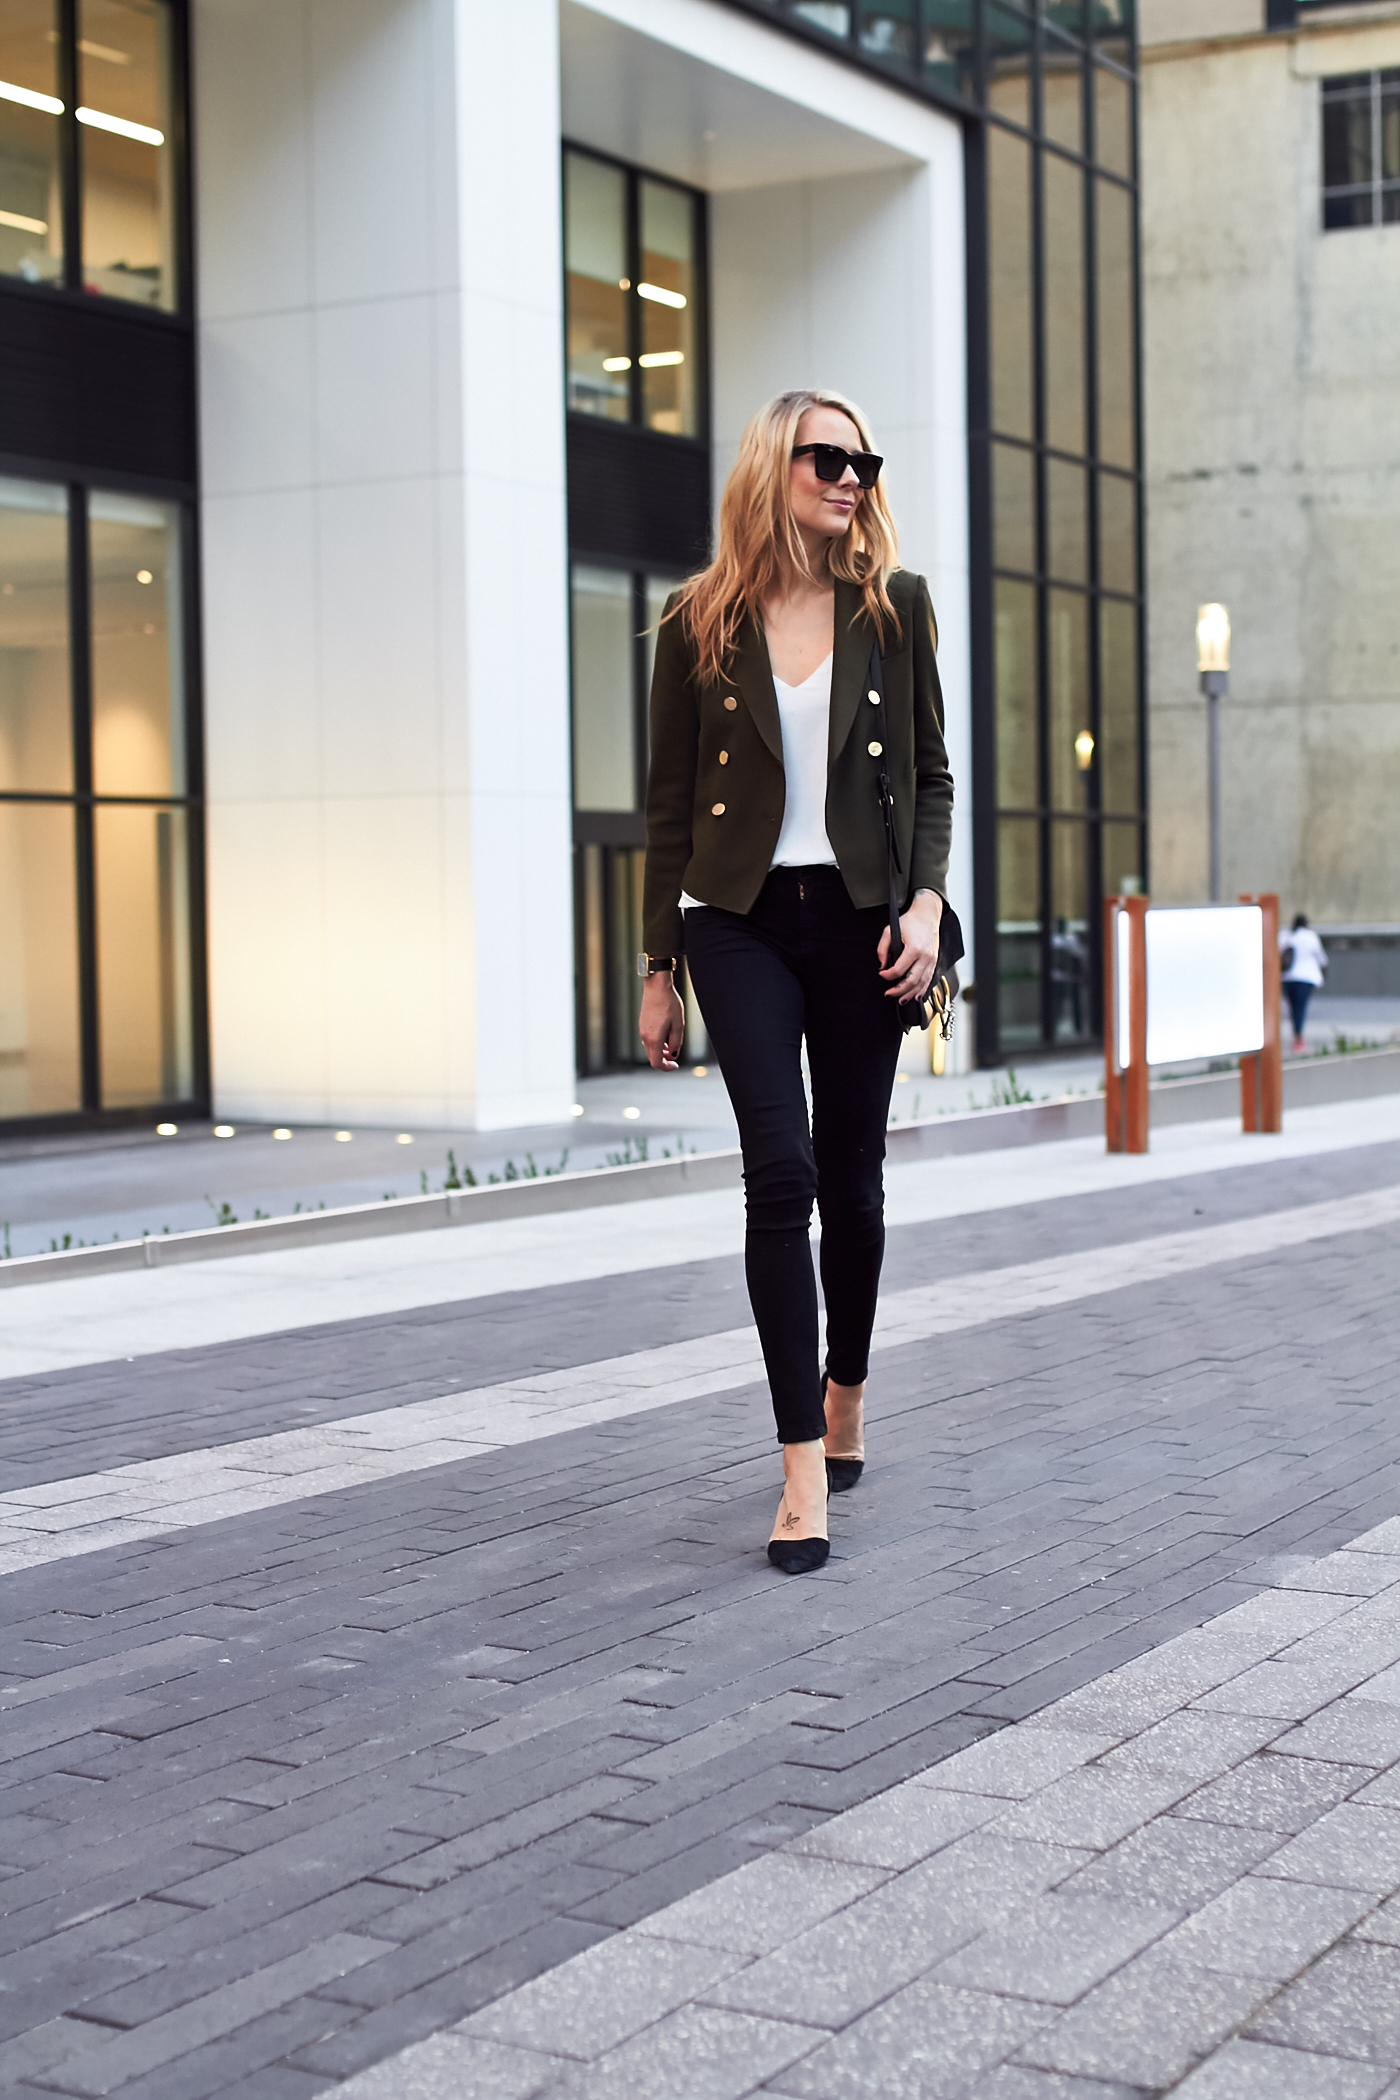 fashion-jackson-topshop-green-military-blazer-black-skinny-jeans-black-pumps